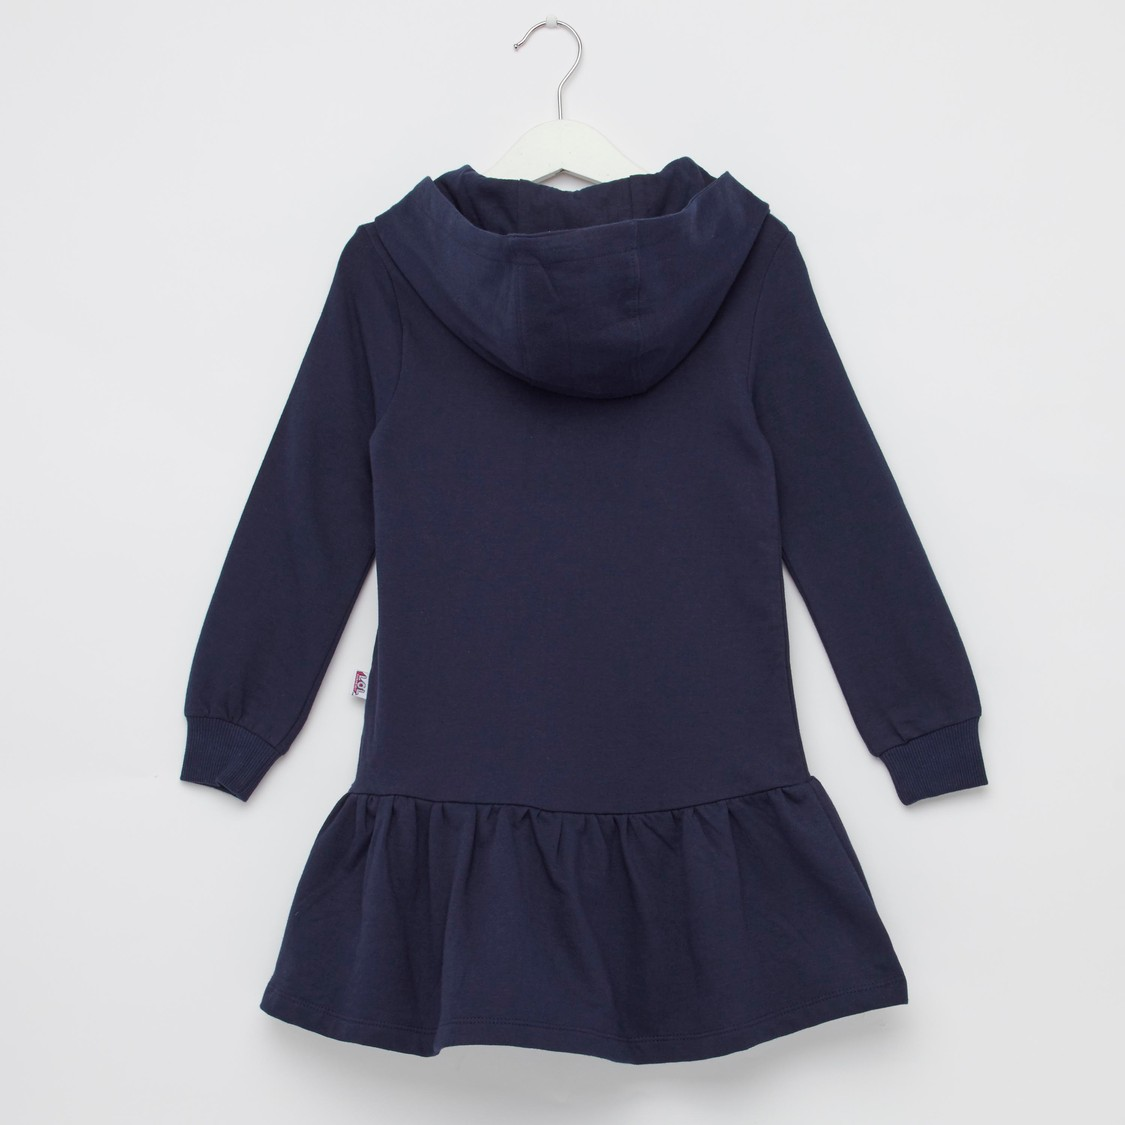 L.O.L. Surprise! Embellished Detail Sweat Dress with Hood